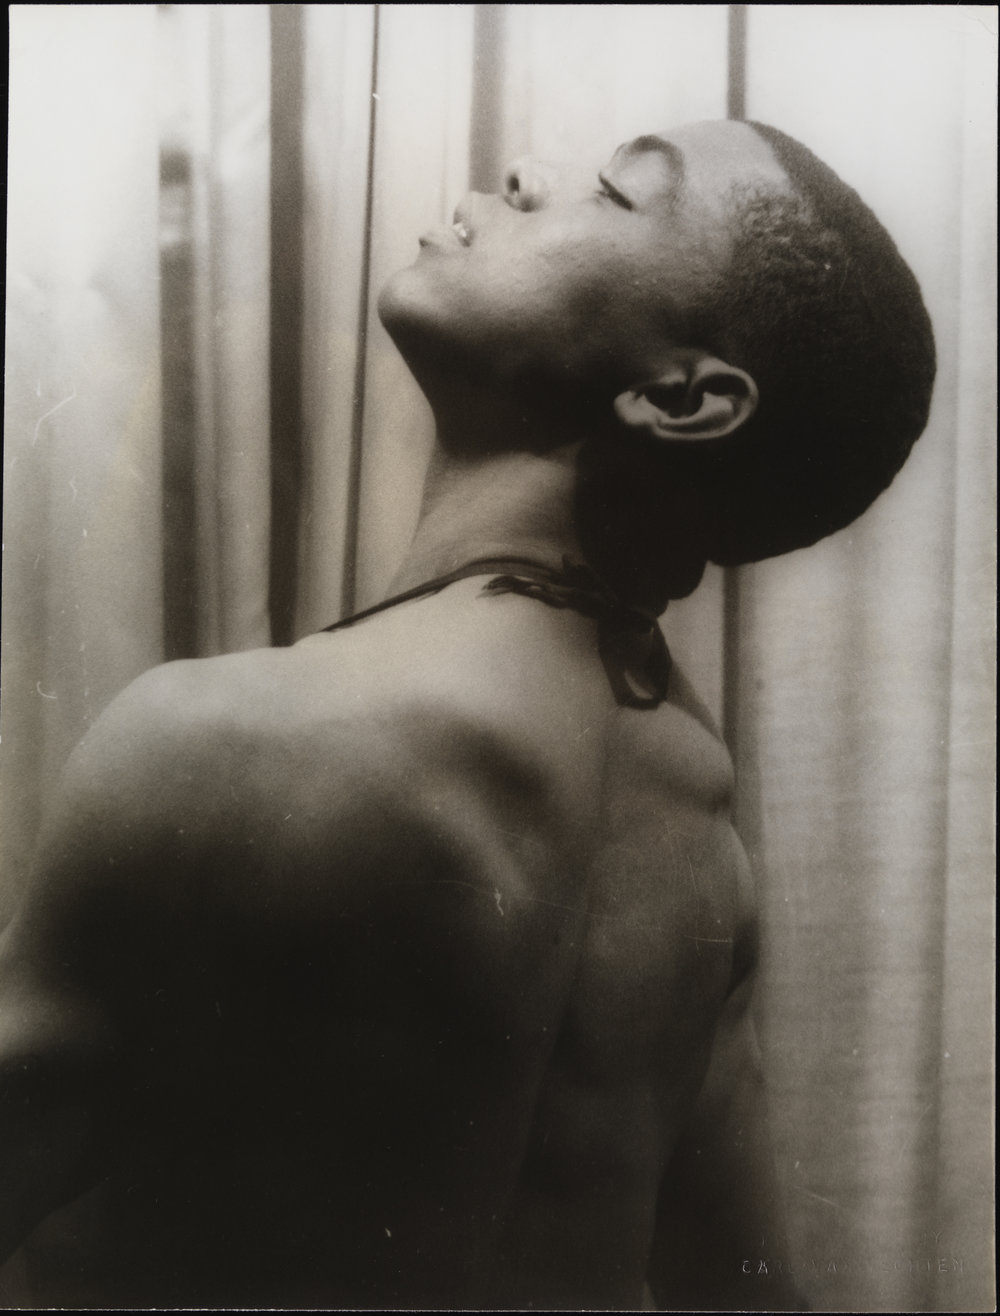 Alvin Ailey, photo by Carl Van Vechten, 1955, Museum of the City of New York, Gift of Carl Van Vechten, 63.4.9. Used with permission of The Van Vechten Trust